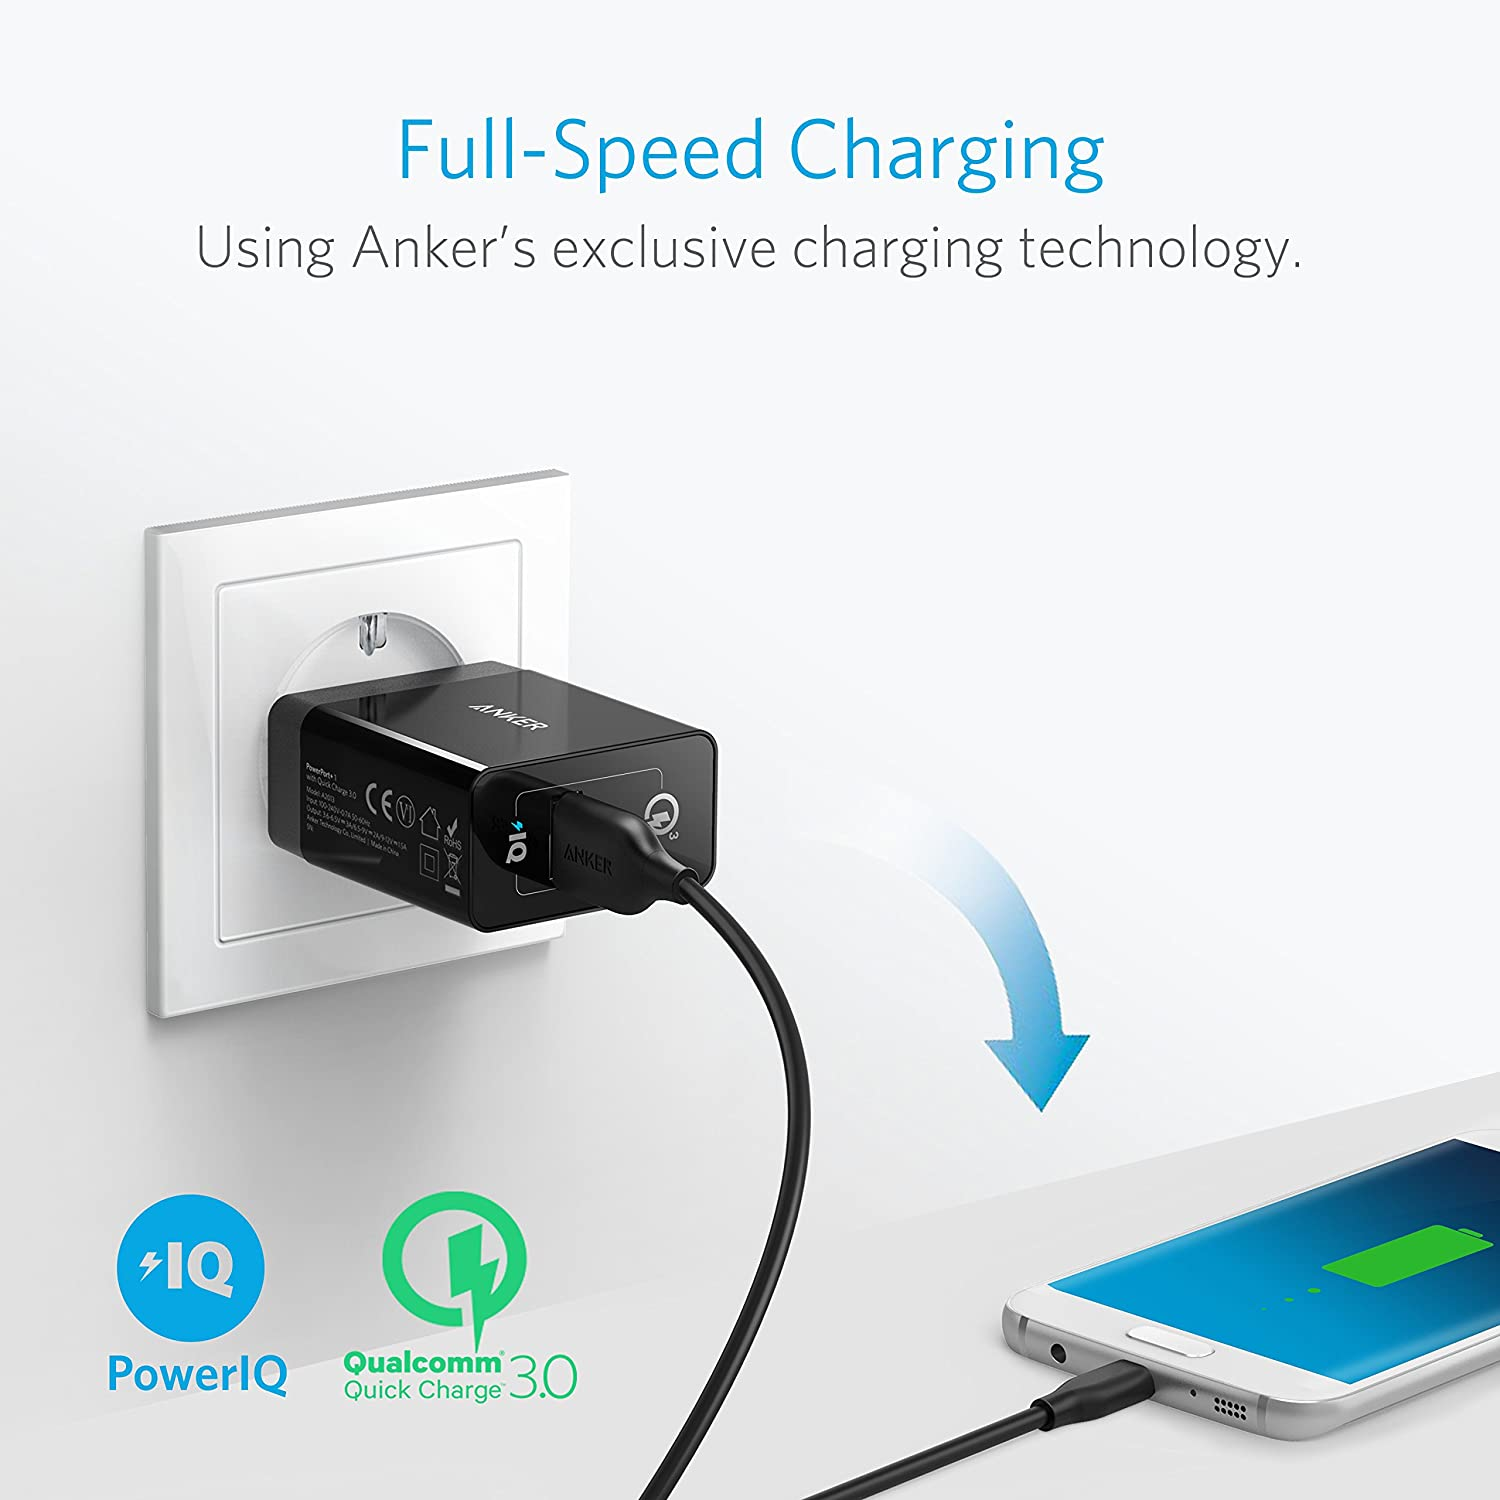 Qc 30 Chargeur Usb Secteur 18w Quick Charge Anker Powerport 1 Sony Xperia Neo L Circuit Diagram High Tech